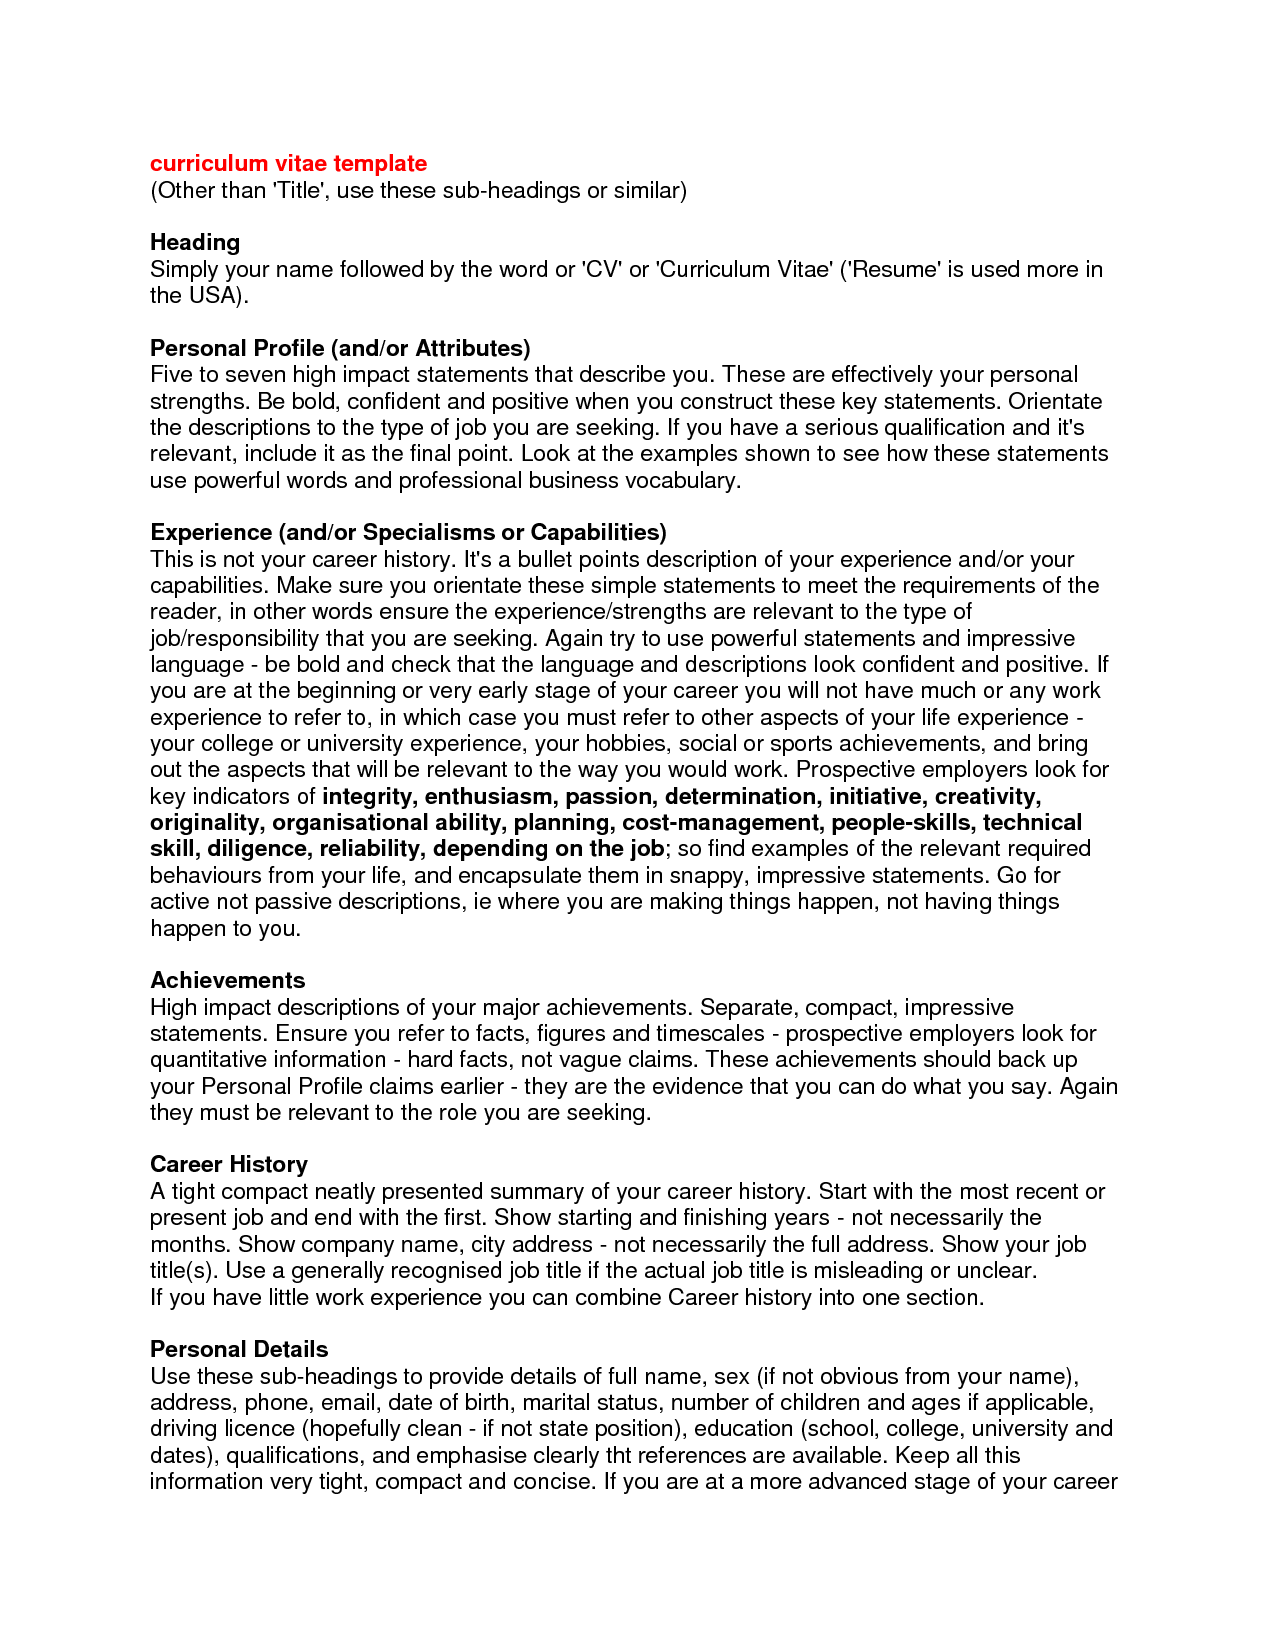 Curriculum Vitae Personal Statement Samples - http://www ...